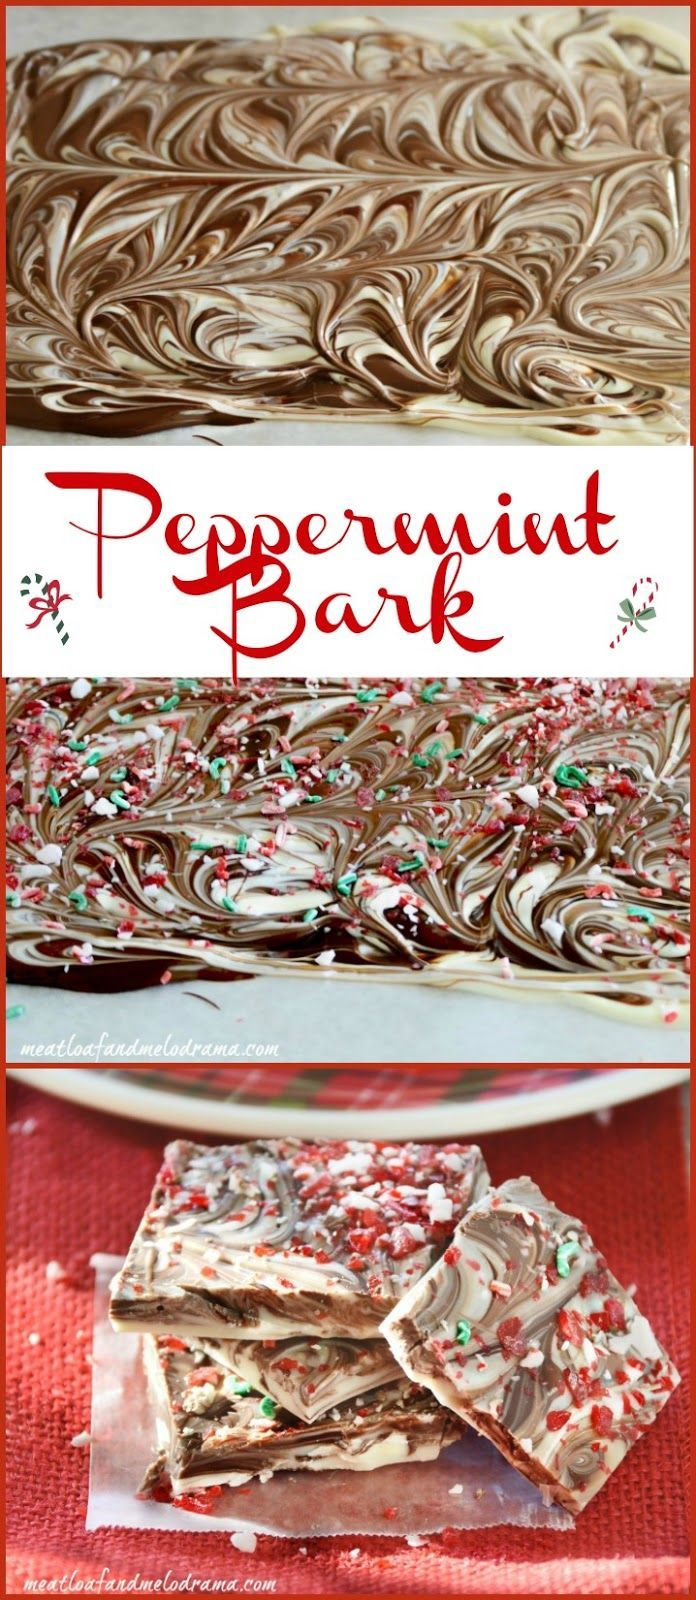 Peppermint bark recipe peppermint barking fc and easy forumfinder Gallery